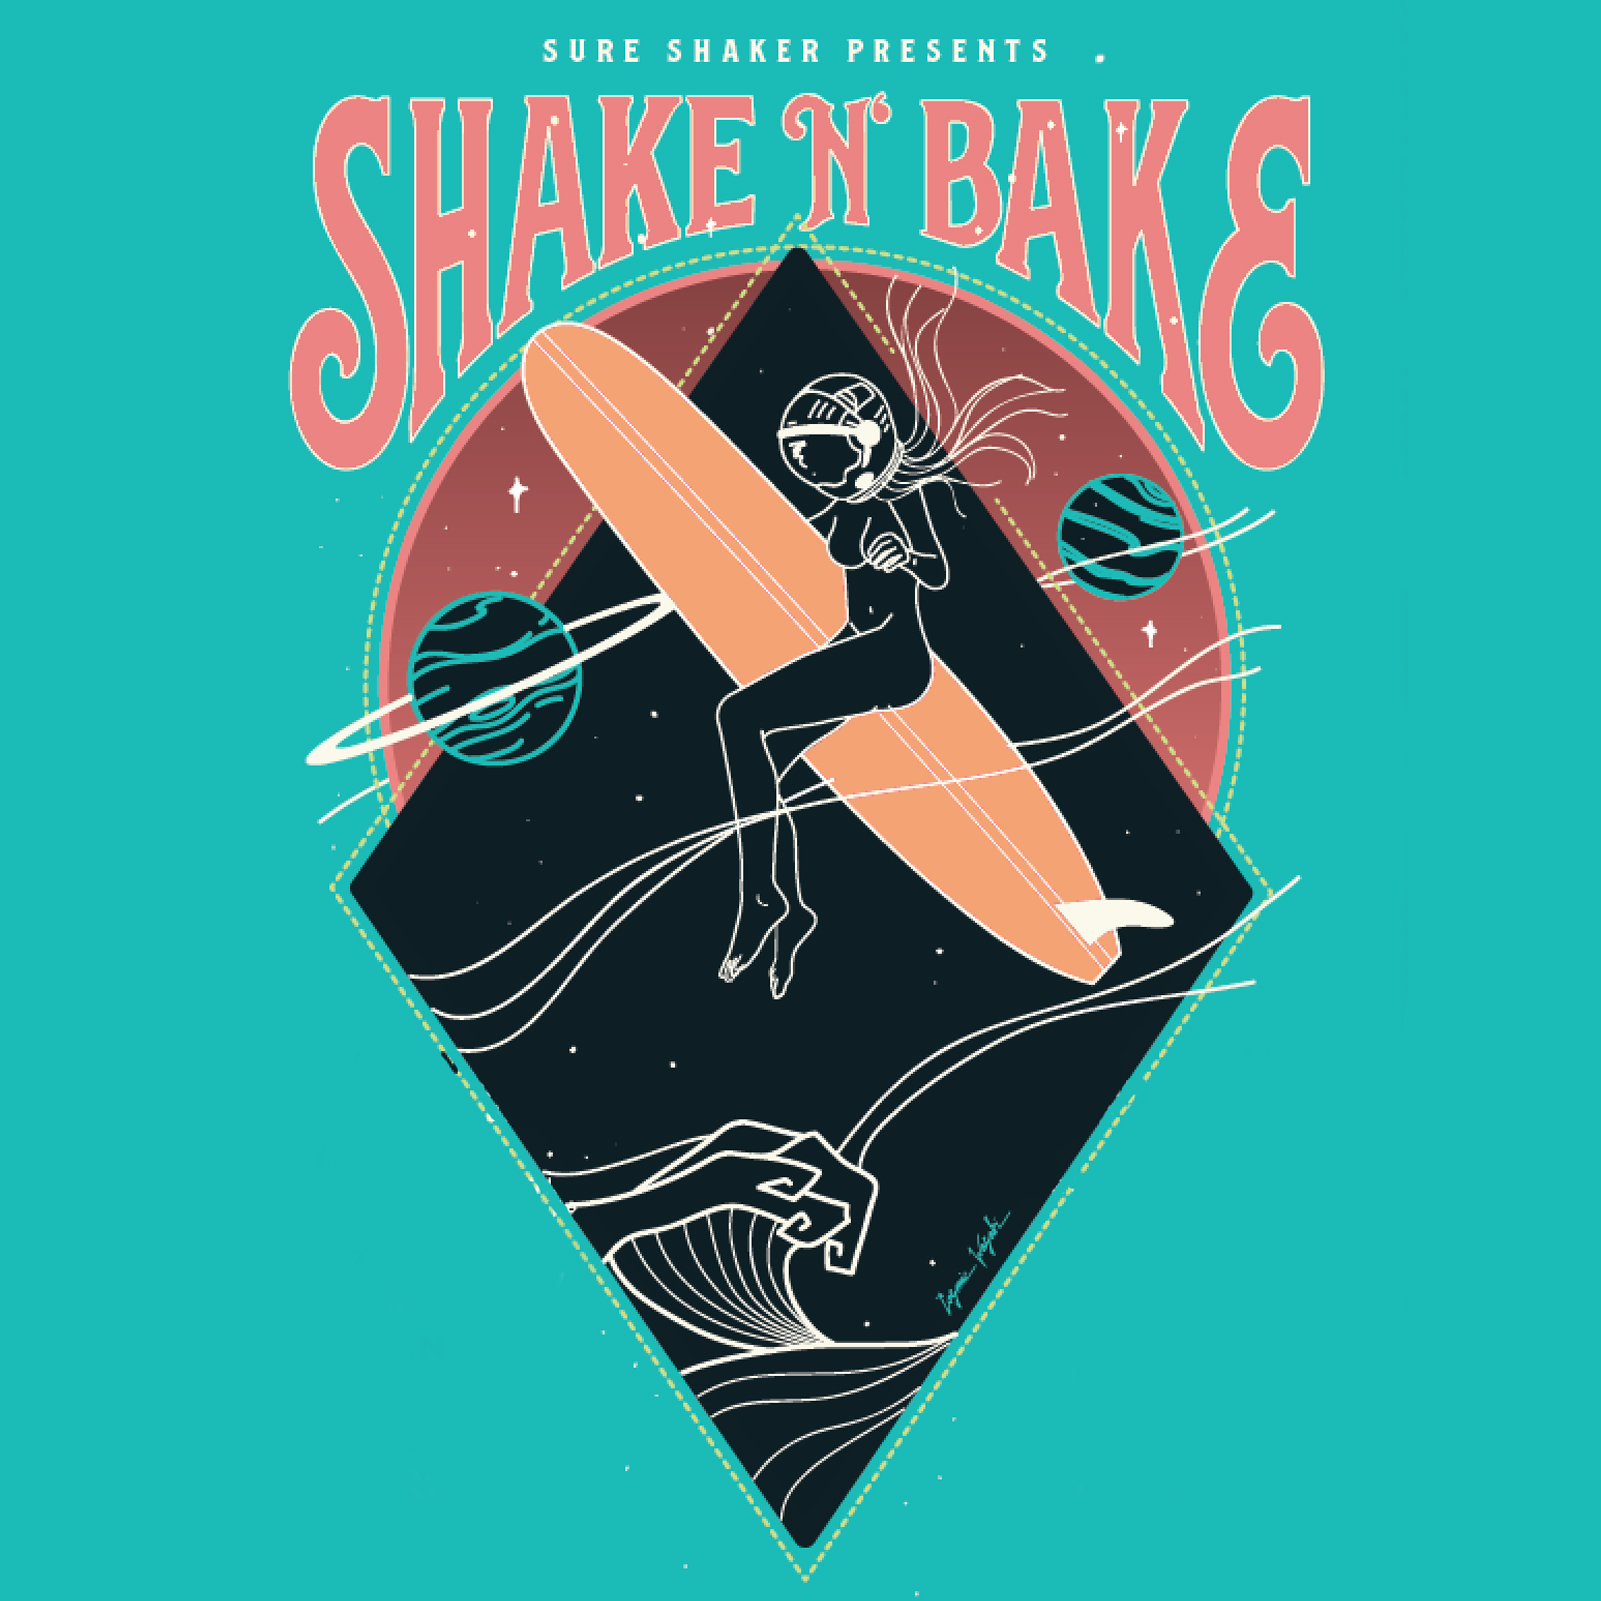 Tickets for Shake N Bake in Newcastle from Ticketbooth